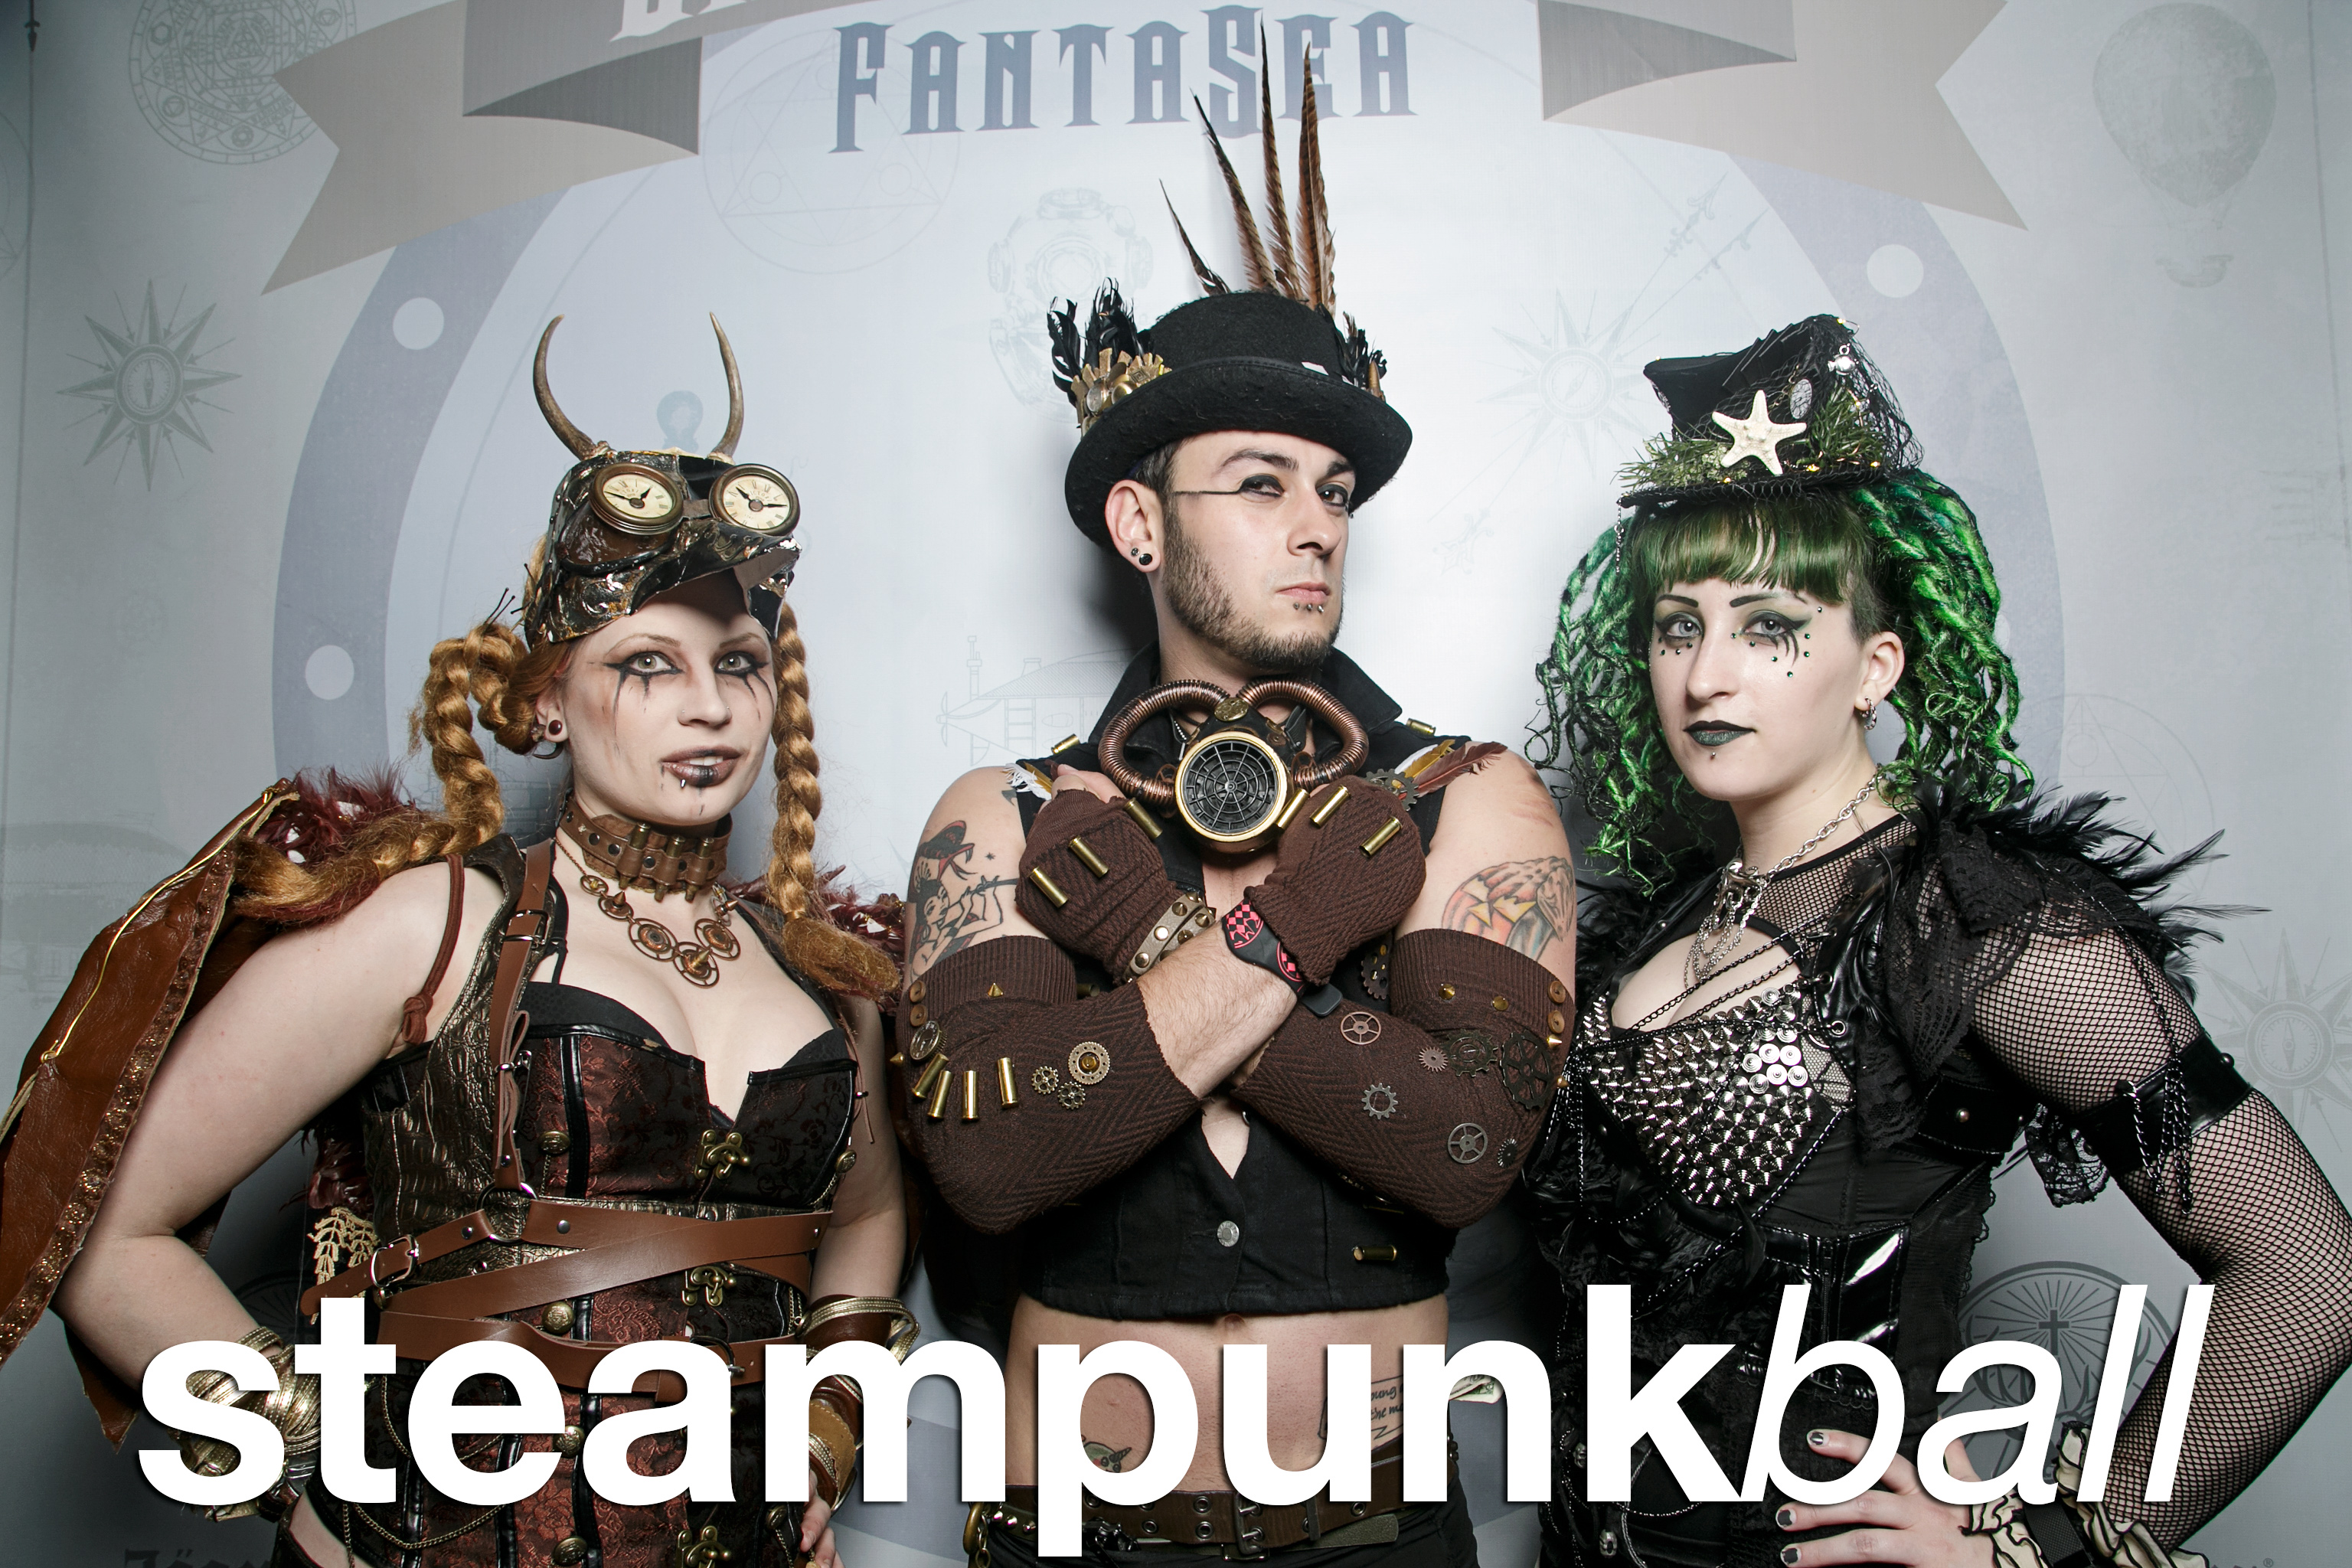 photo booth portraits from the tampa bay steampunk ball, april 2017